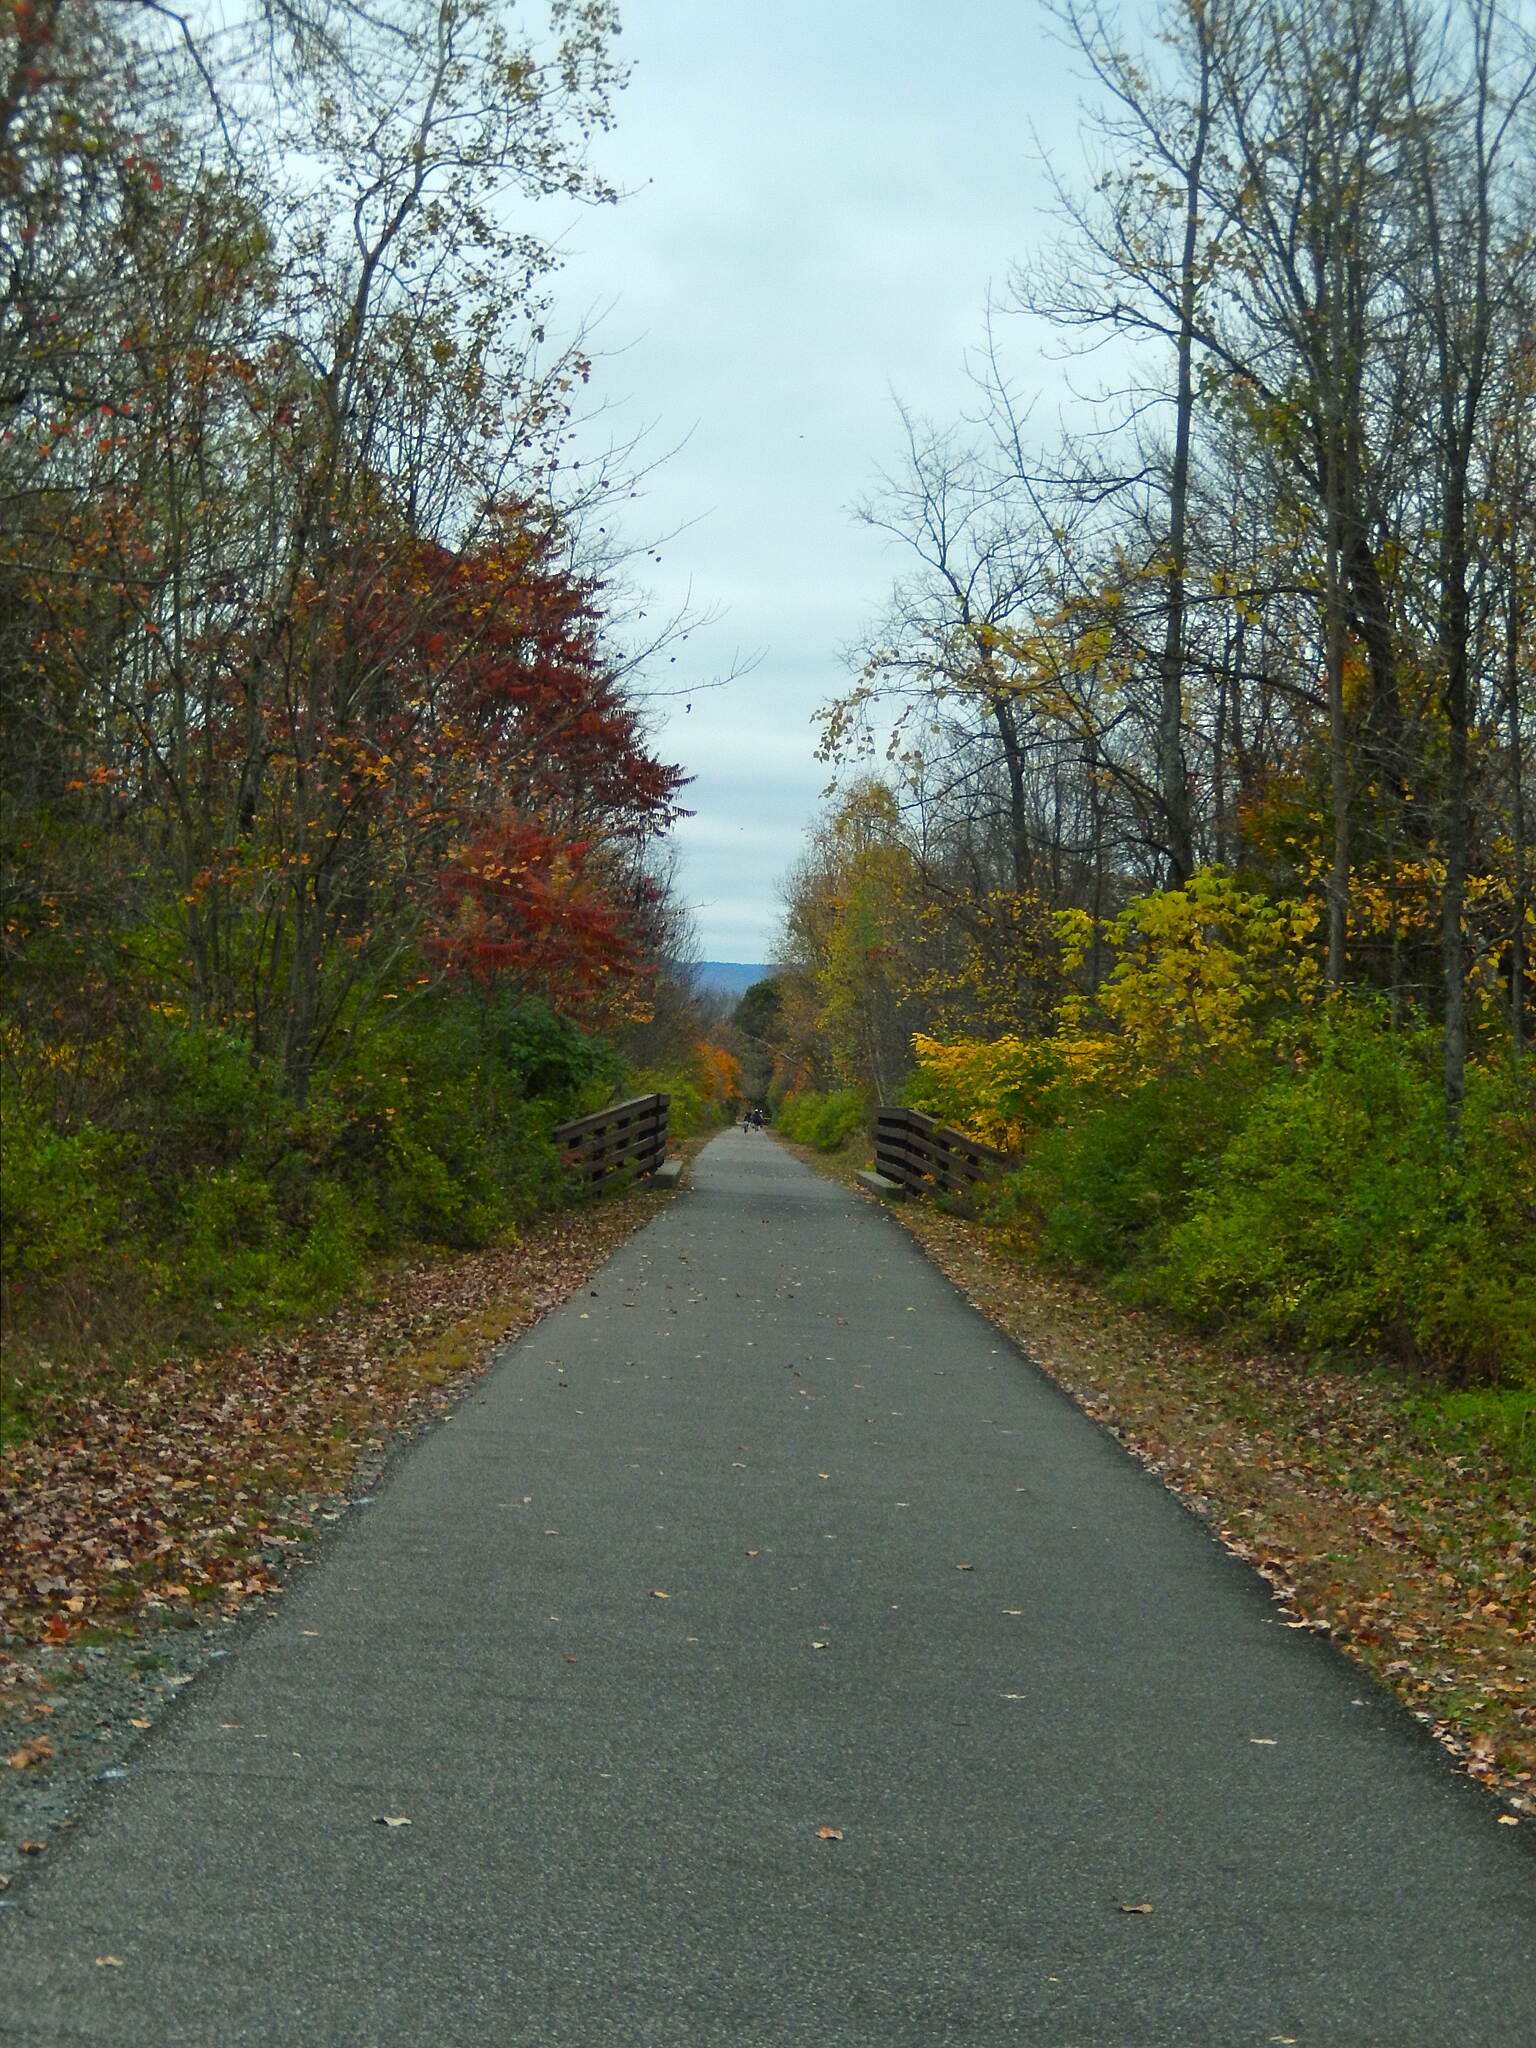 Ashuwillticook Rail Trail AWESOME FALL FOLIAGE THIS IS TRULY MOTHER NATURE AT HER FINEST!